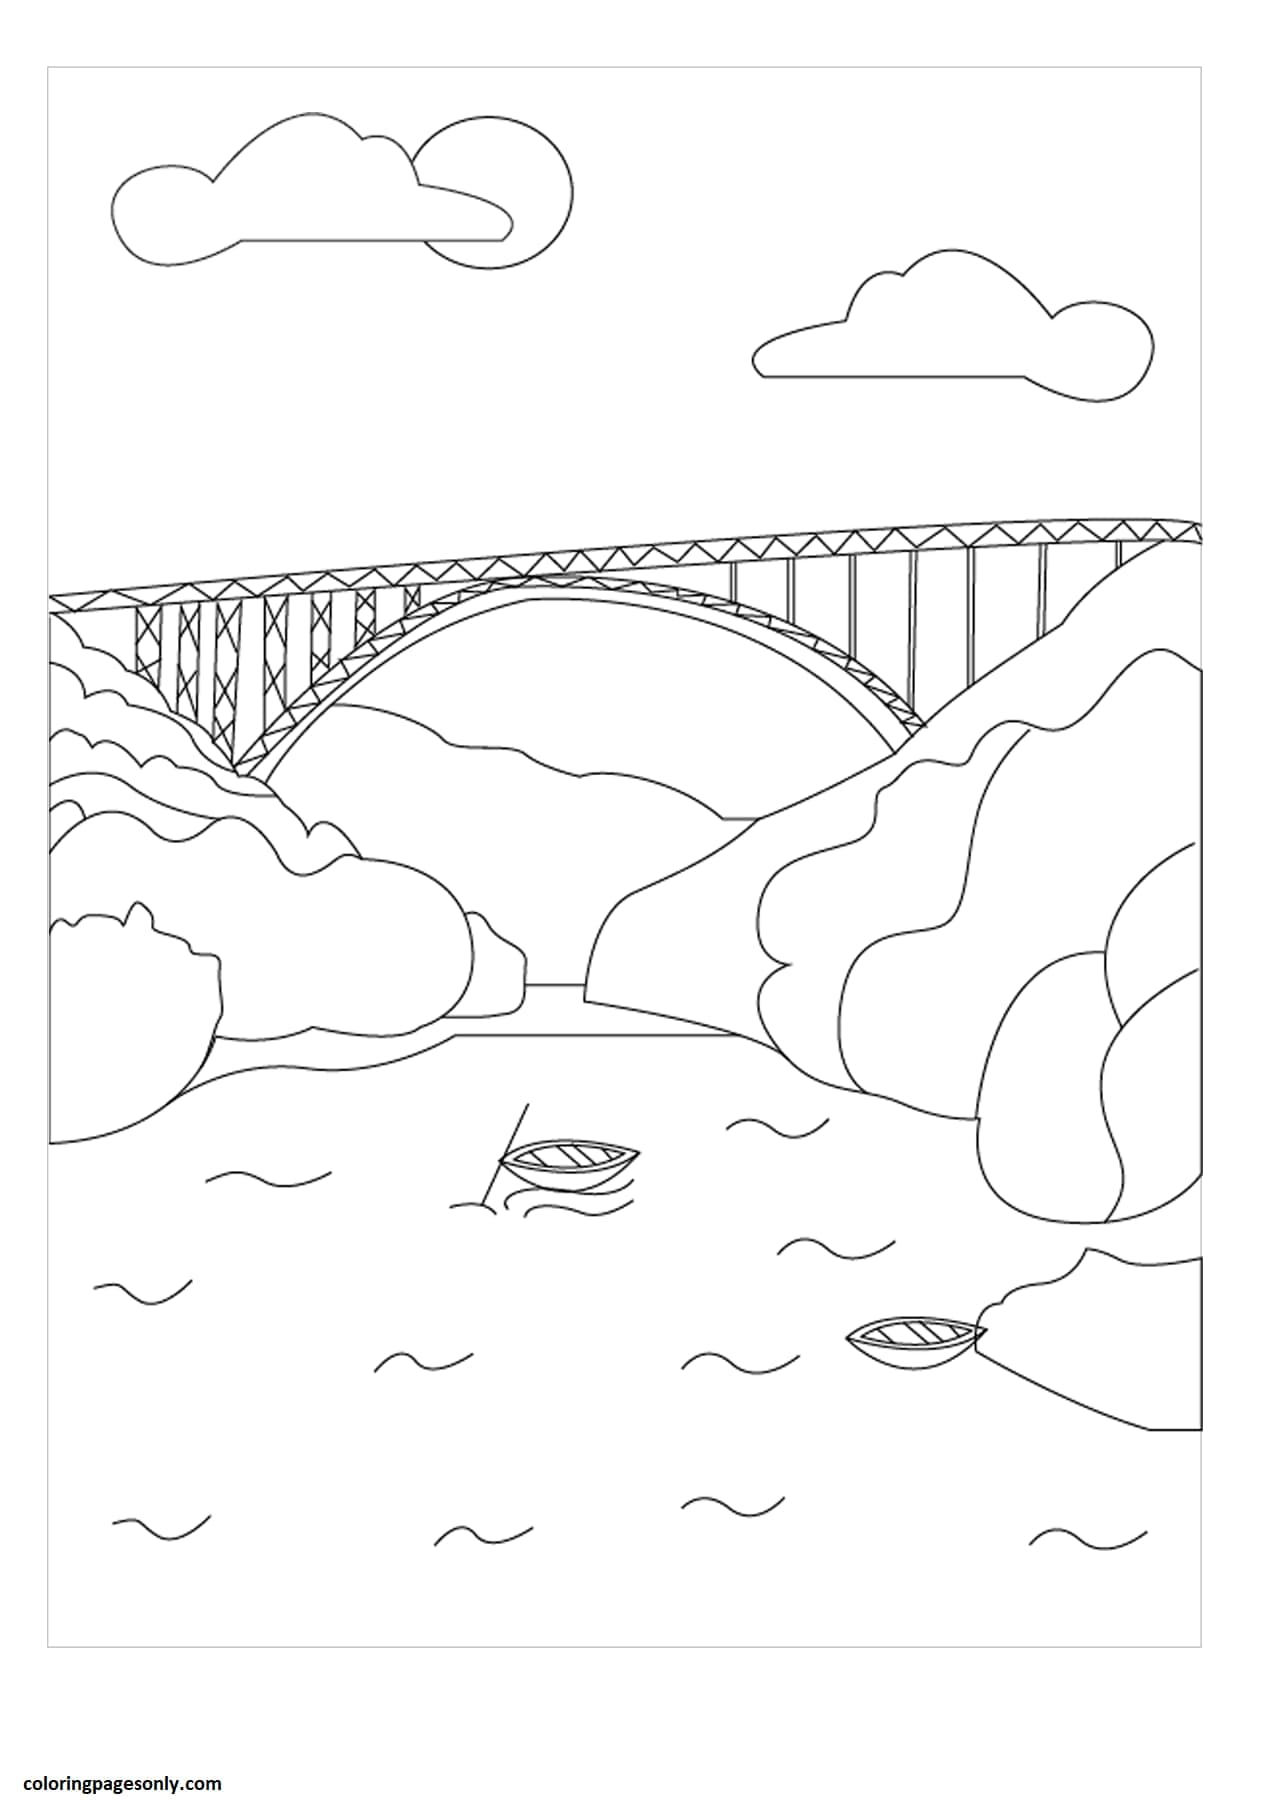 New River Gorge Coloring Page